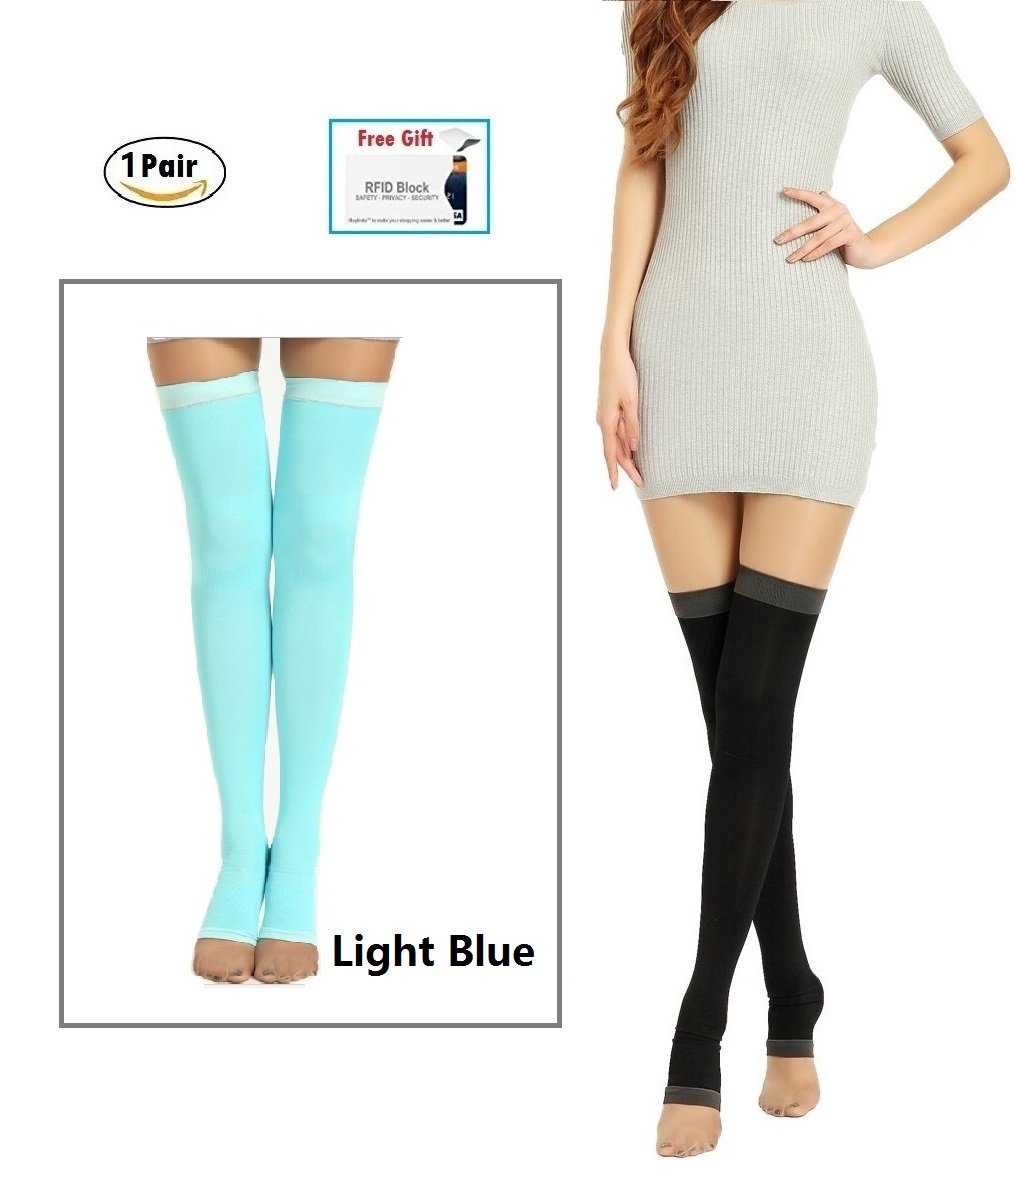 1Pair Yoga Sleep Therapeutic Thigh-high Compression Socks Toeless S/M + Small gift Black) CNMY